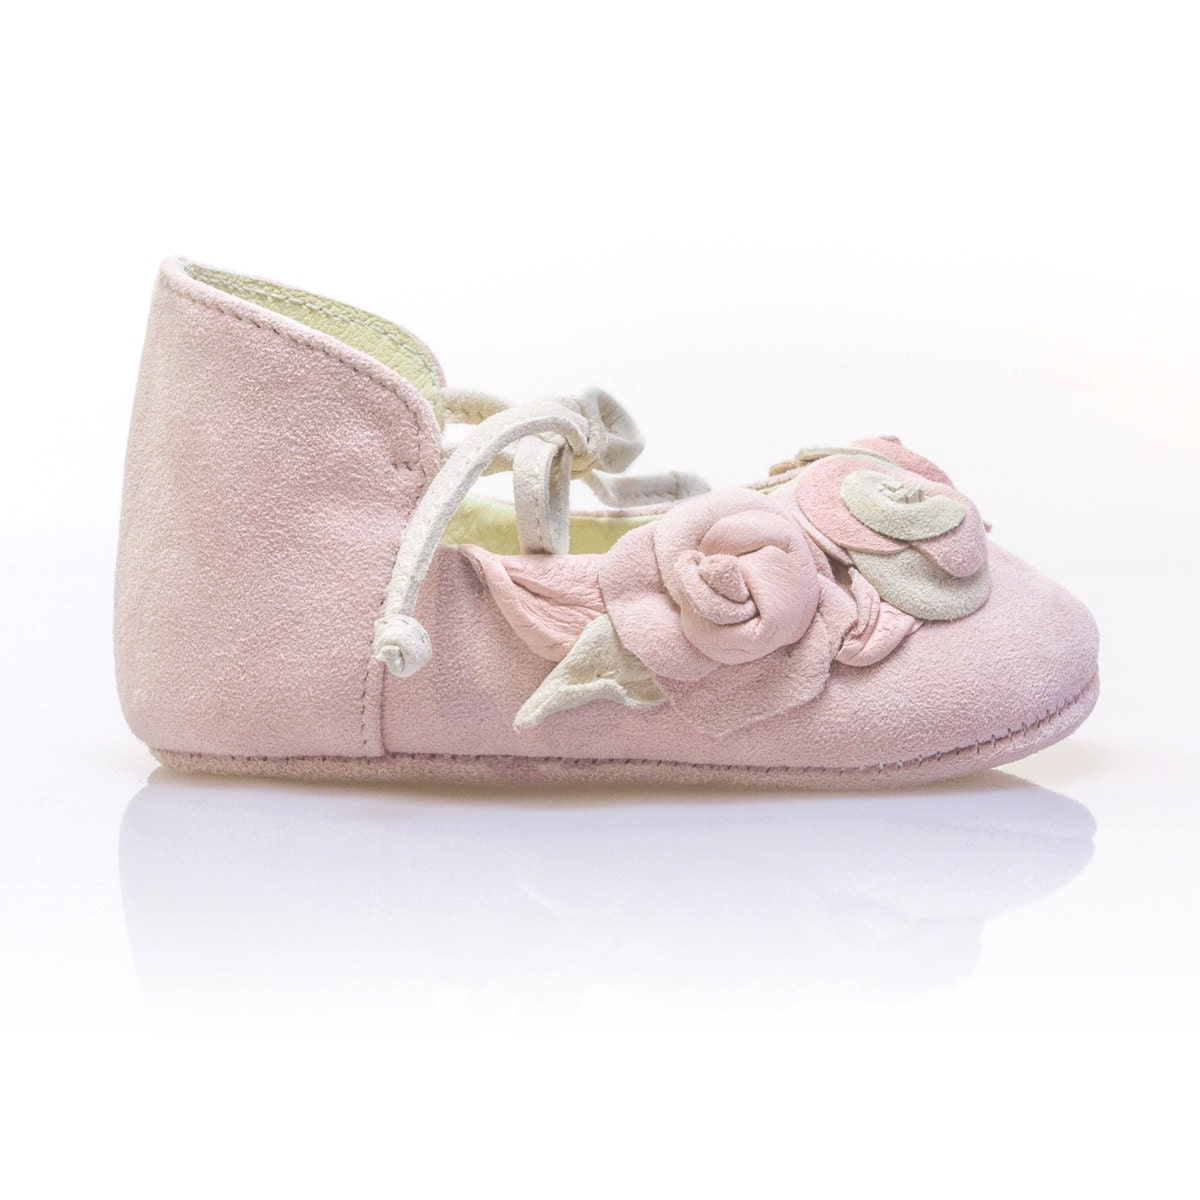 Baby Shoes Girl Pink Baby Shoes Baby Moccasins Baby Shower